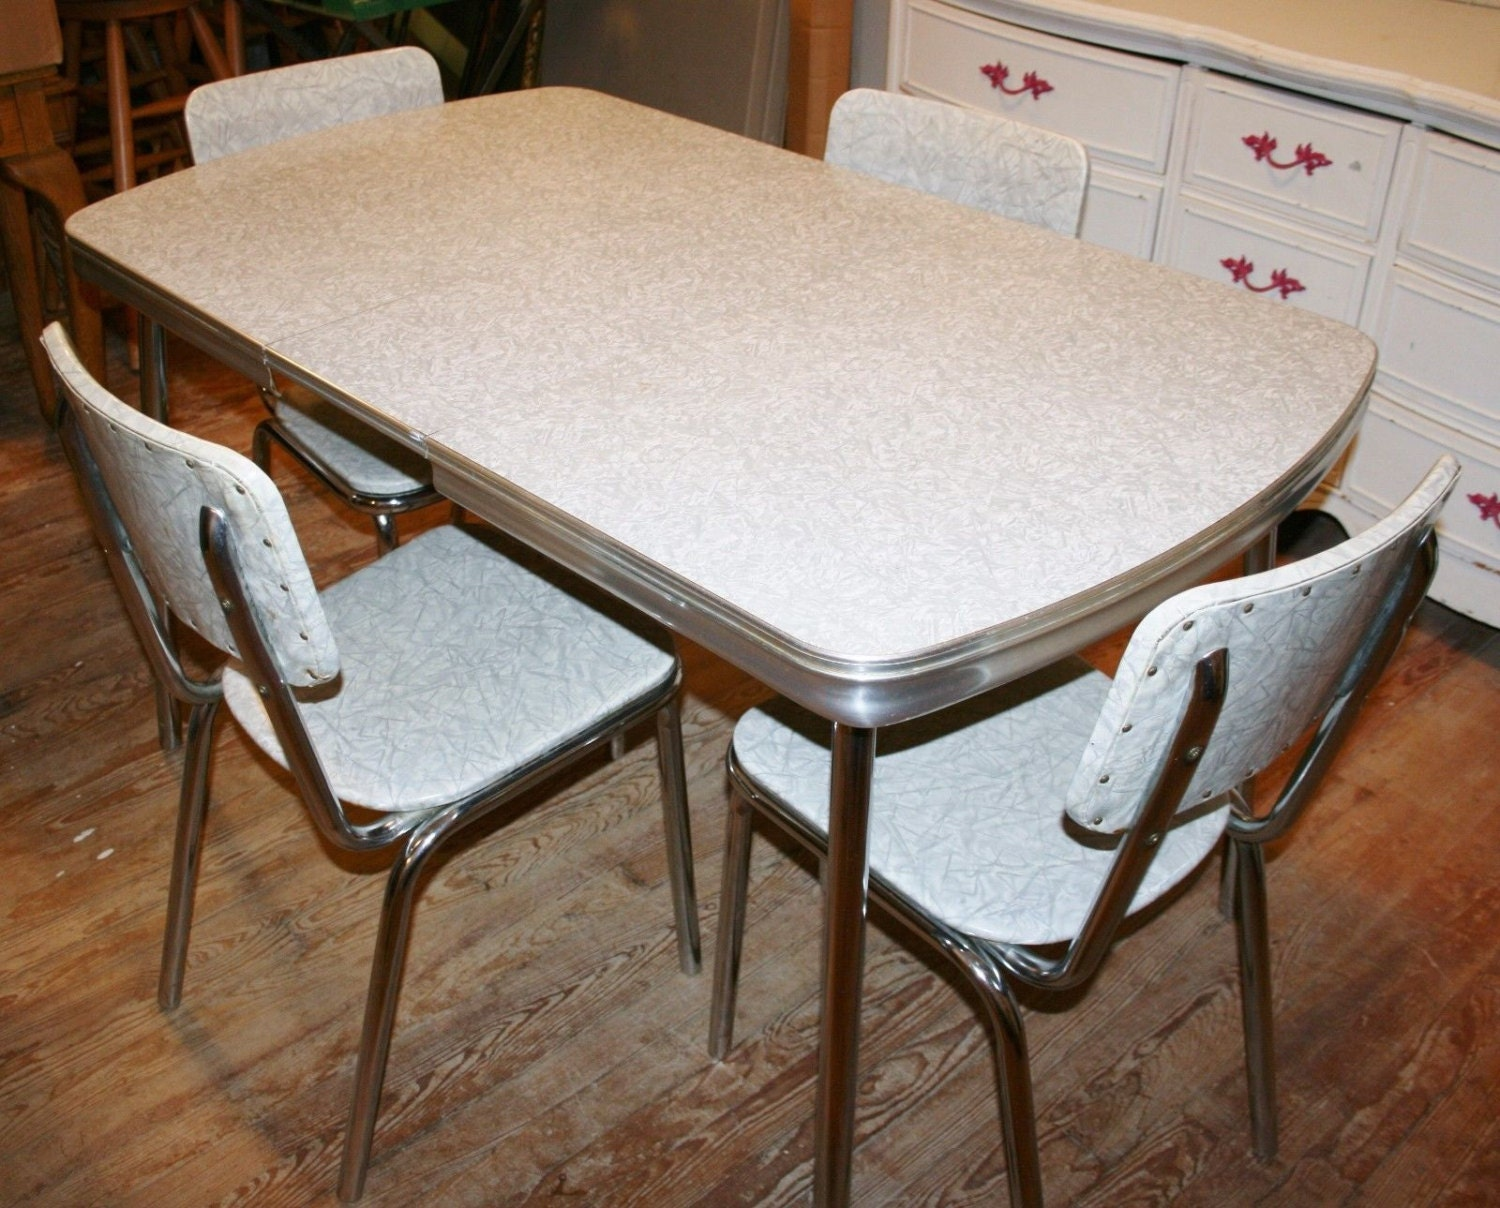 1950s retro formica kitchen dinette set table 4 chairs